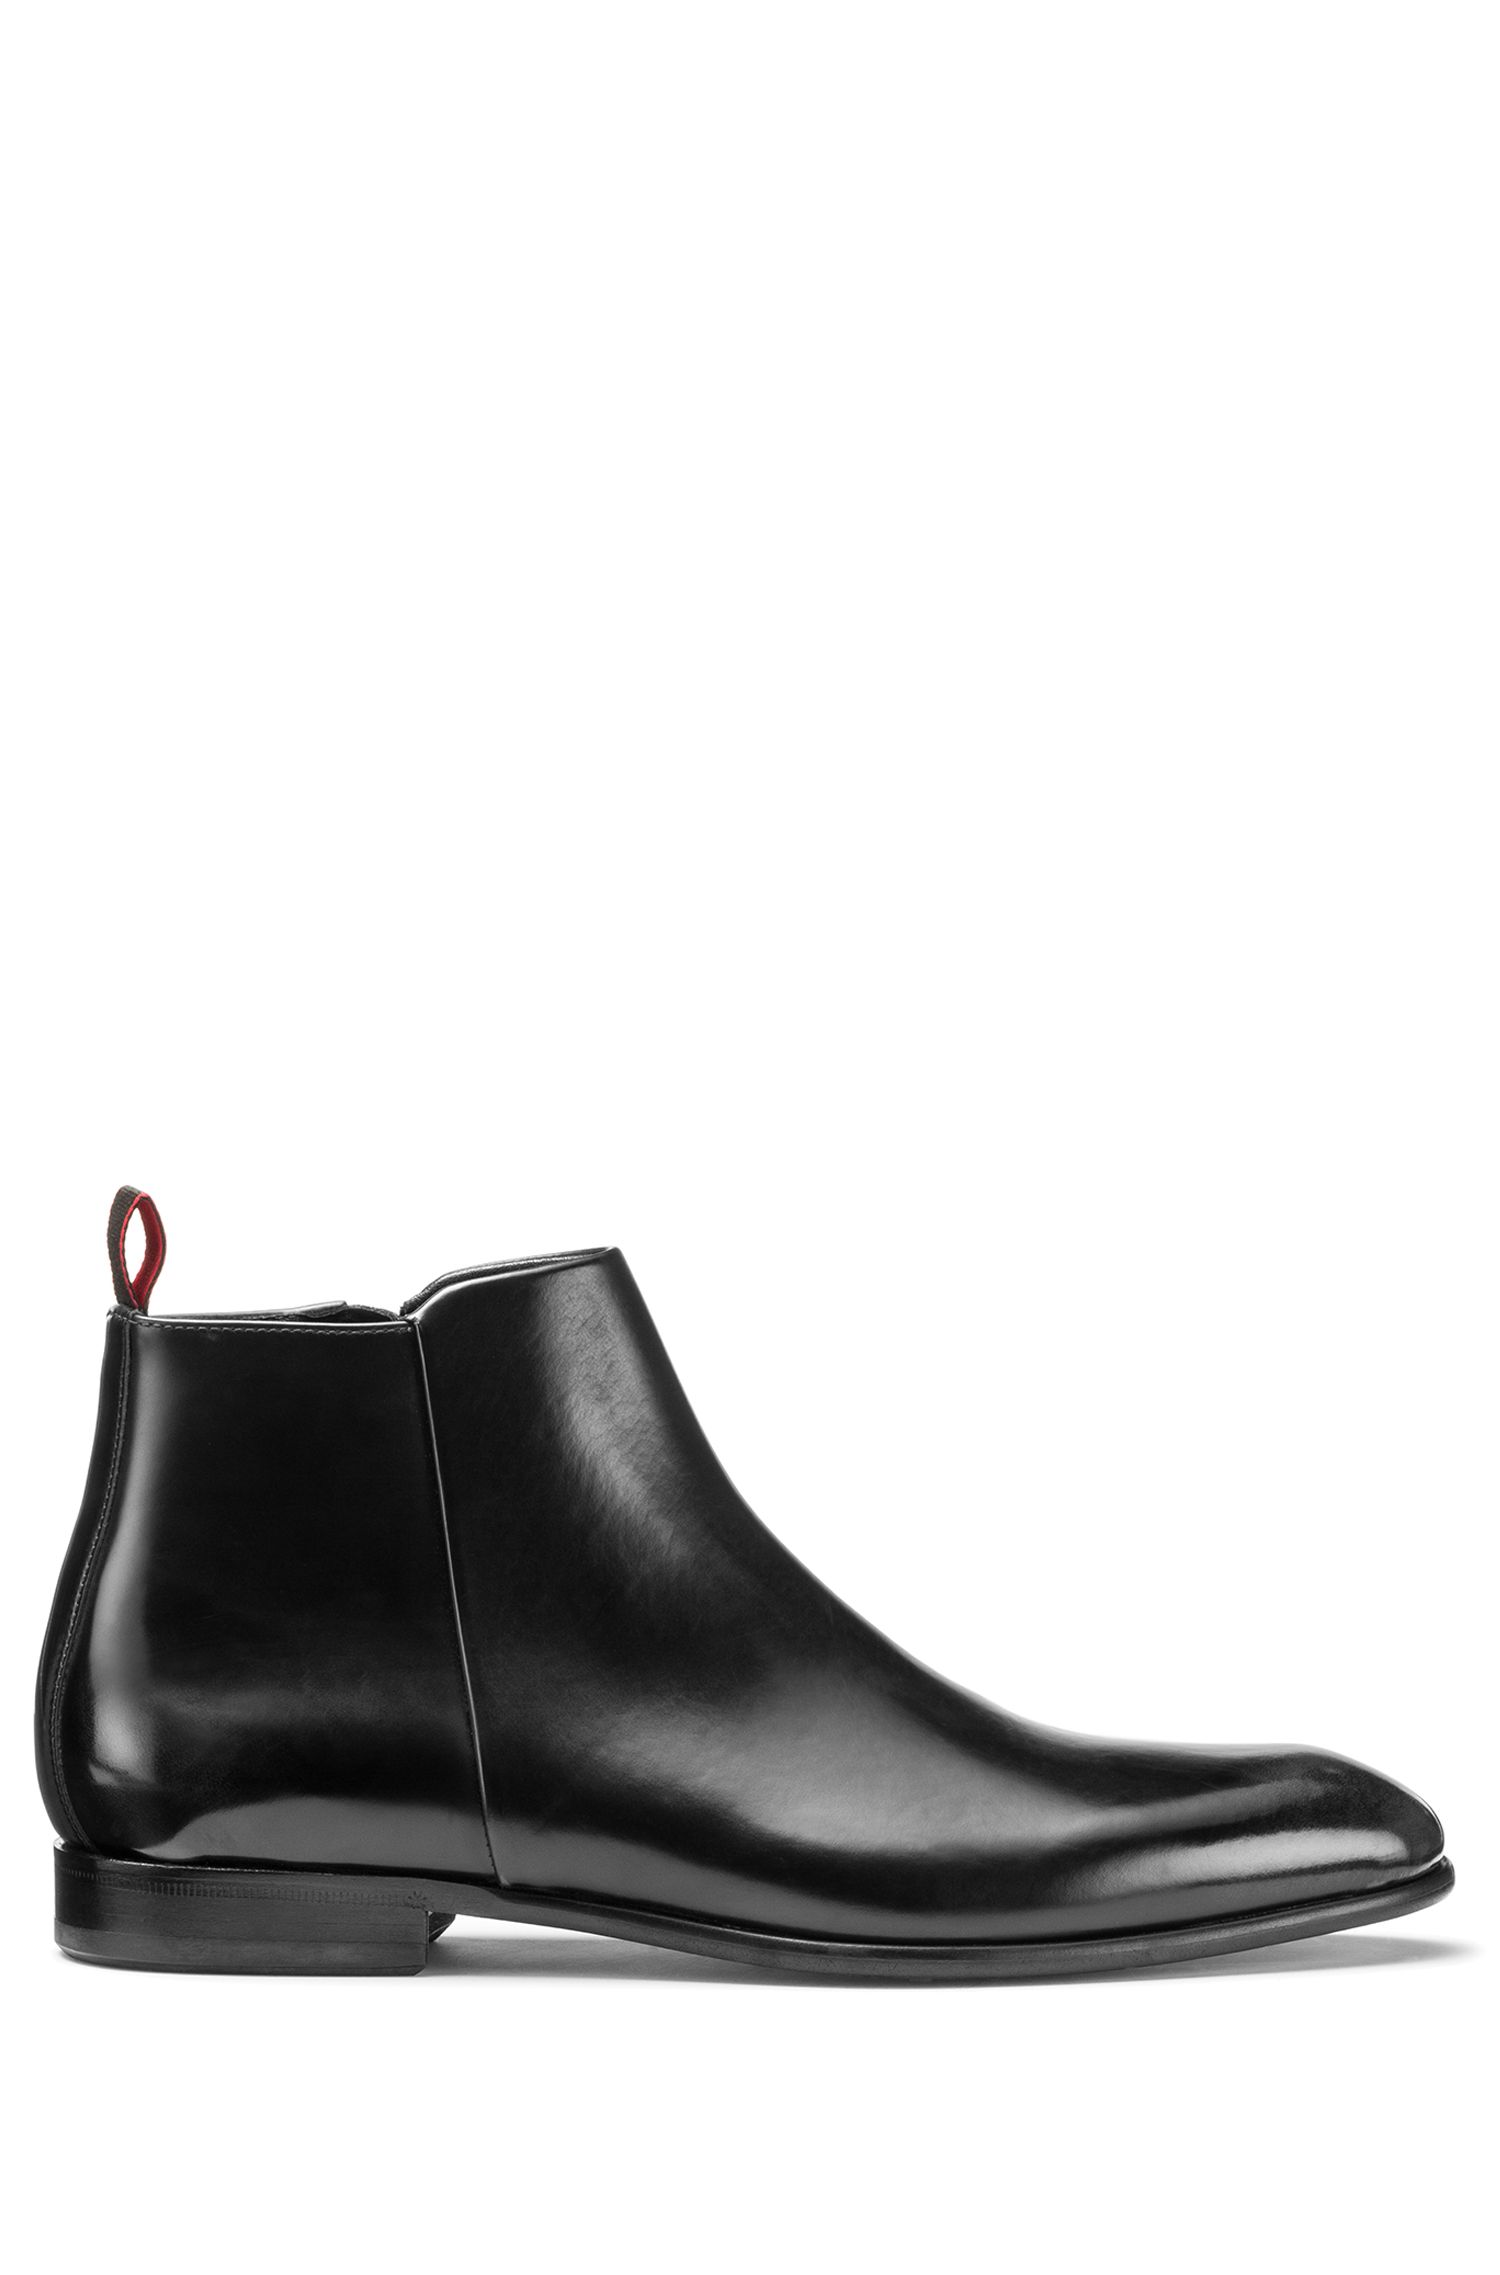 Brush-off leather boots with side zip